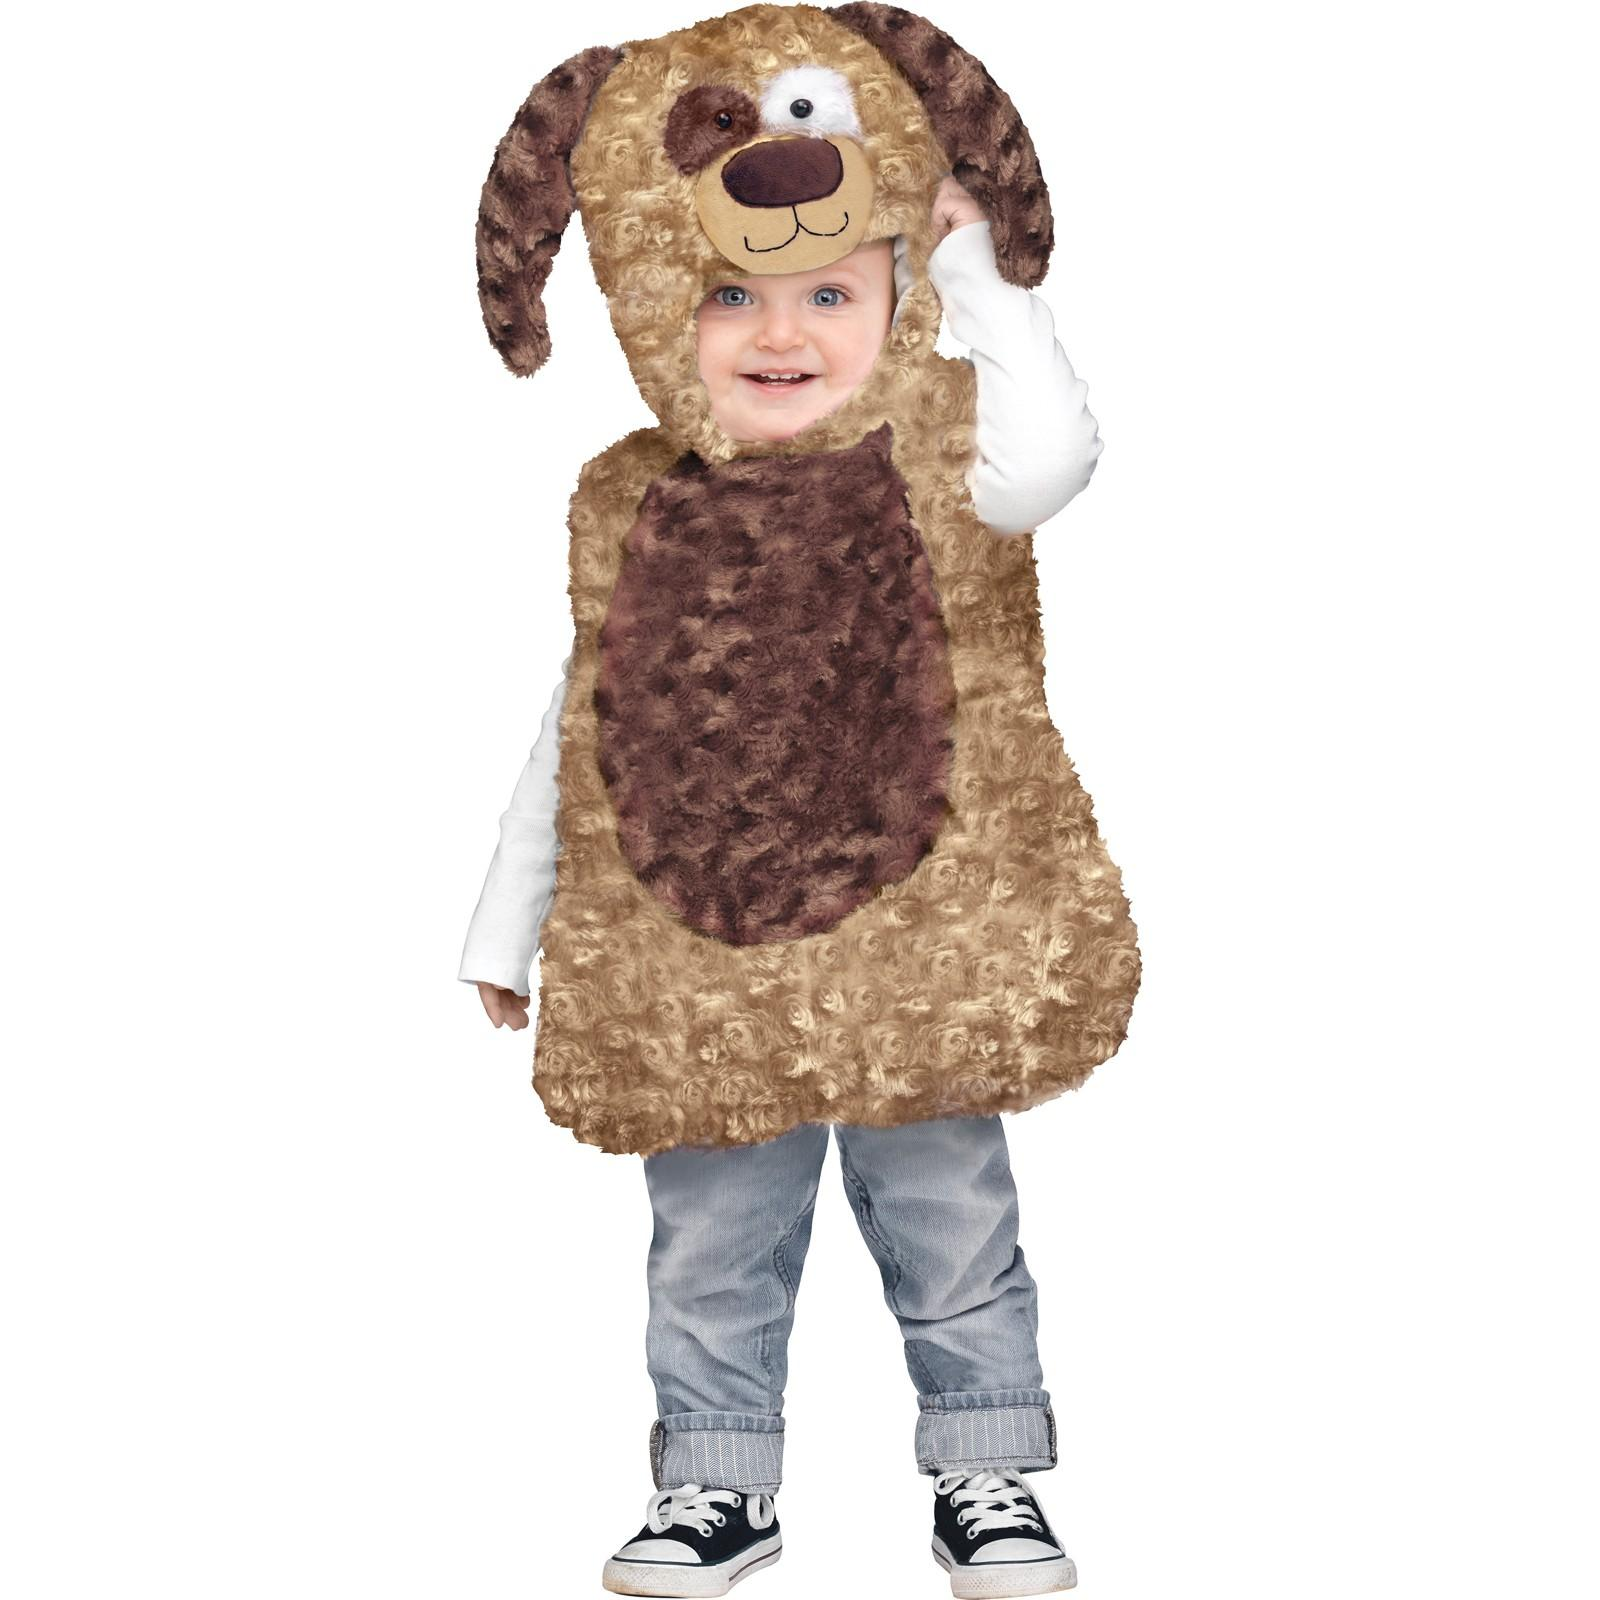 Cuddly Puppy Toddler Costume 2-4T